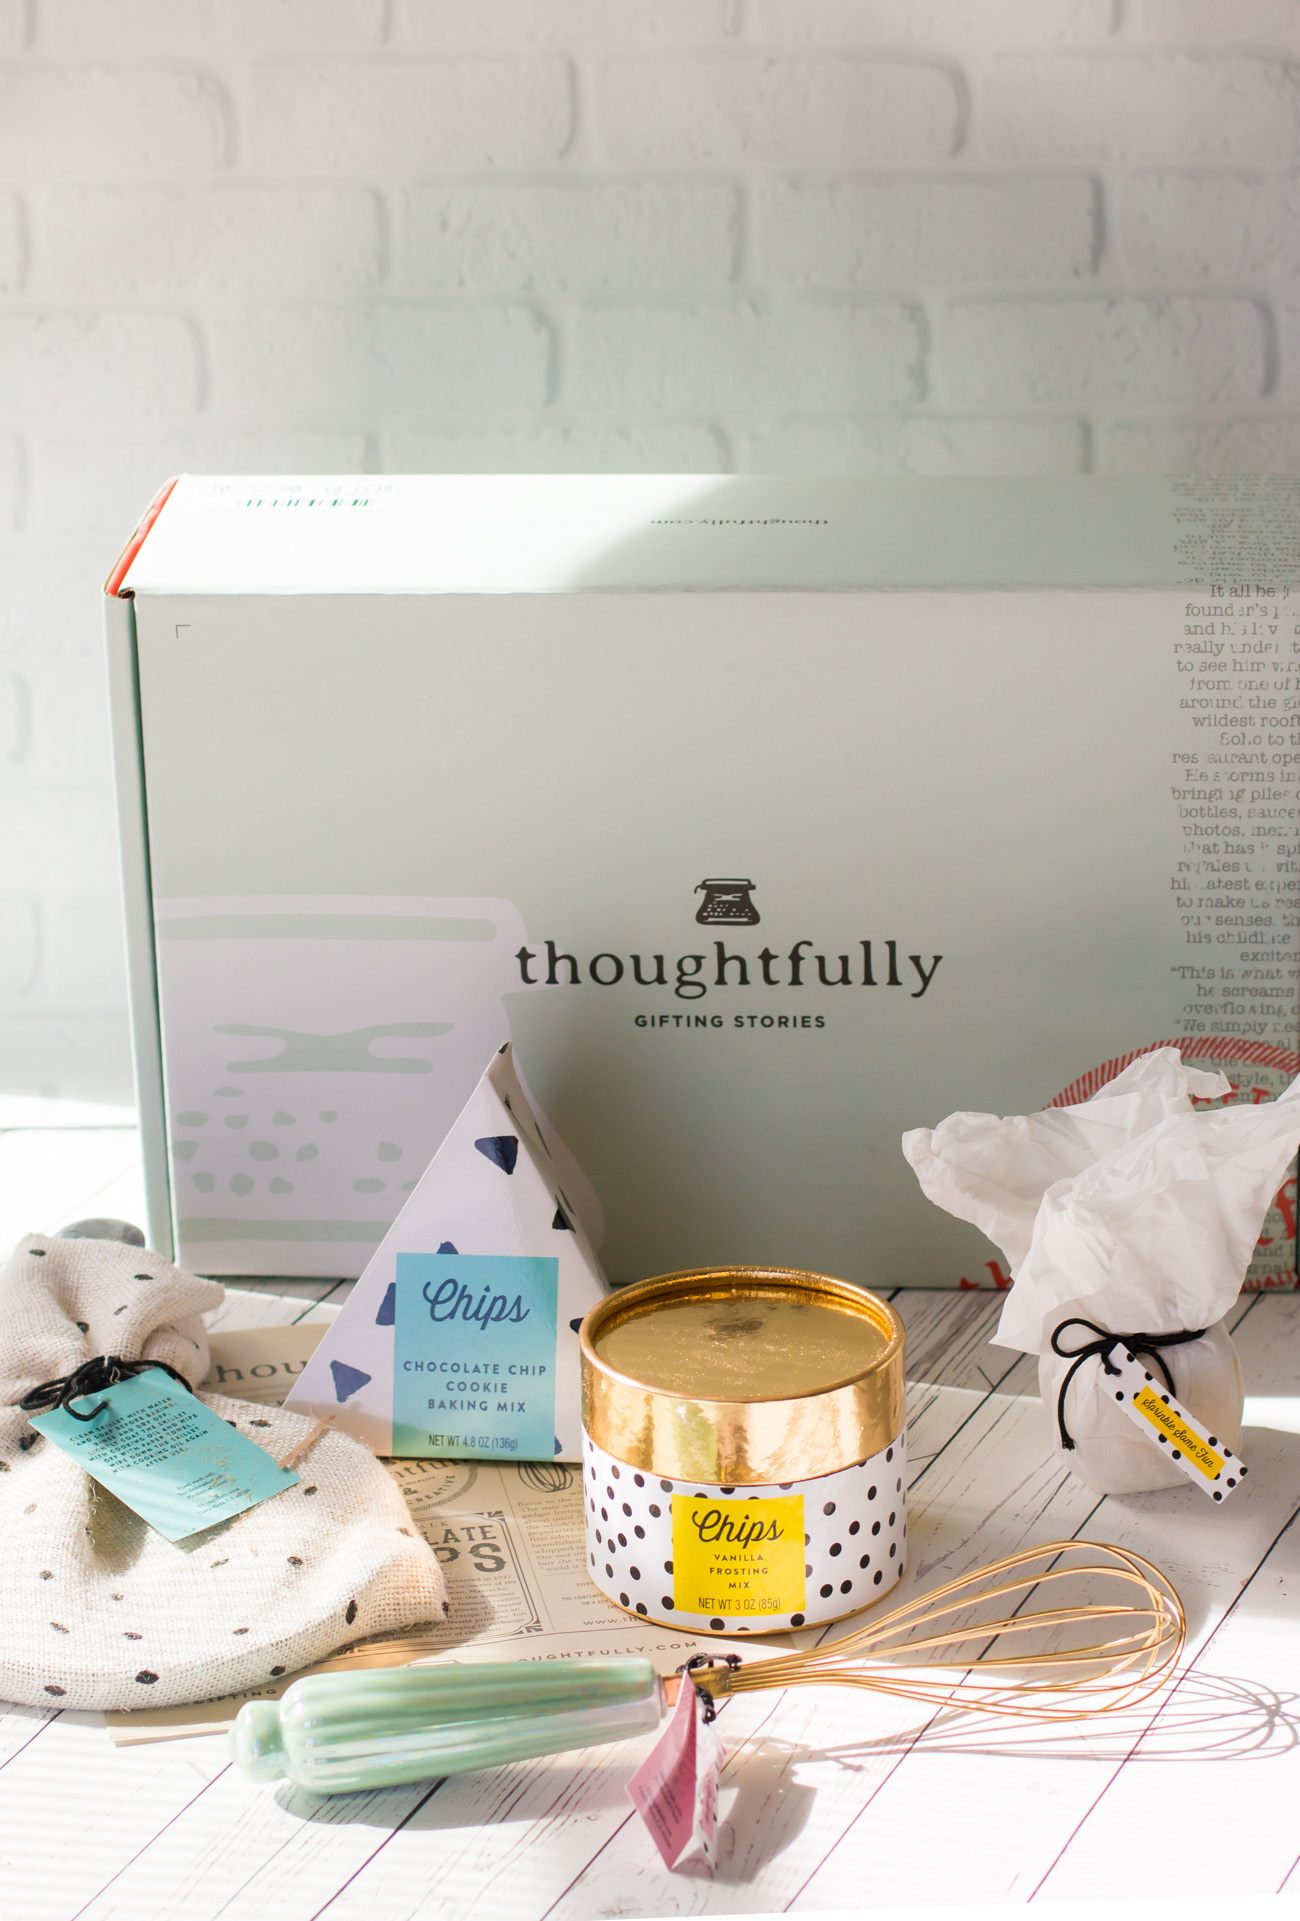 Thoughtfully gift boxes come in a variety of themes, like this one for cookie lovers.